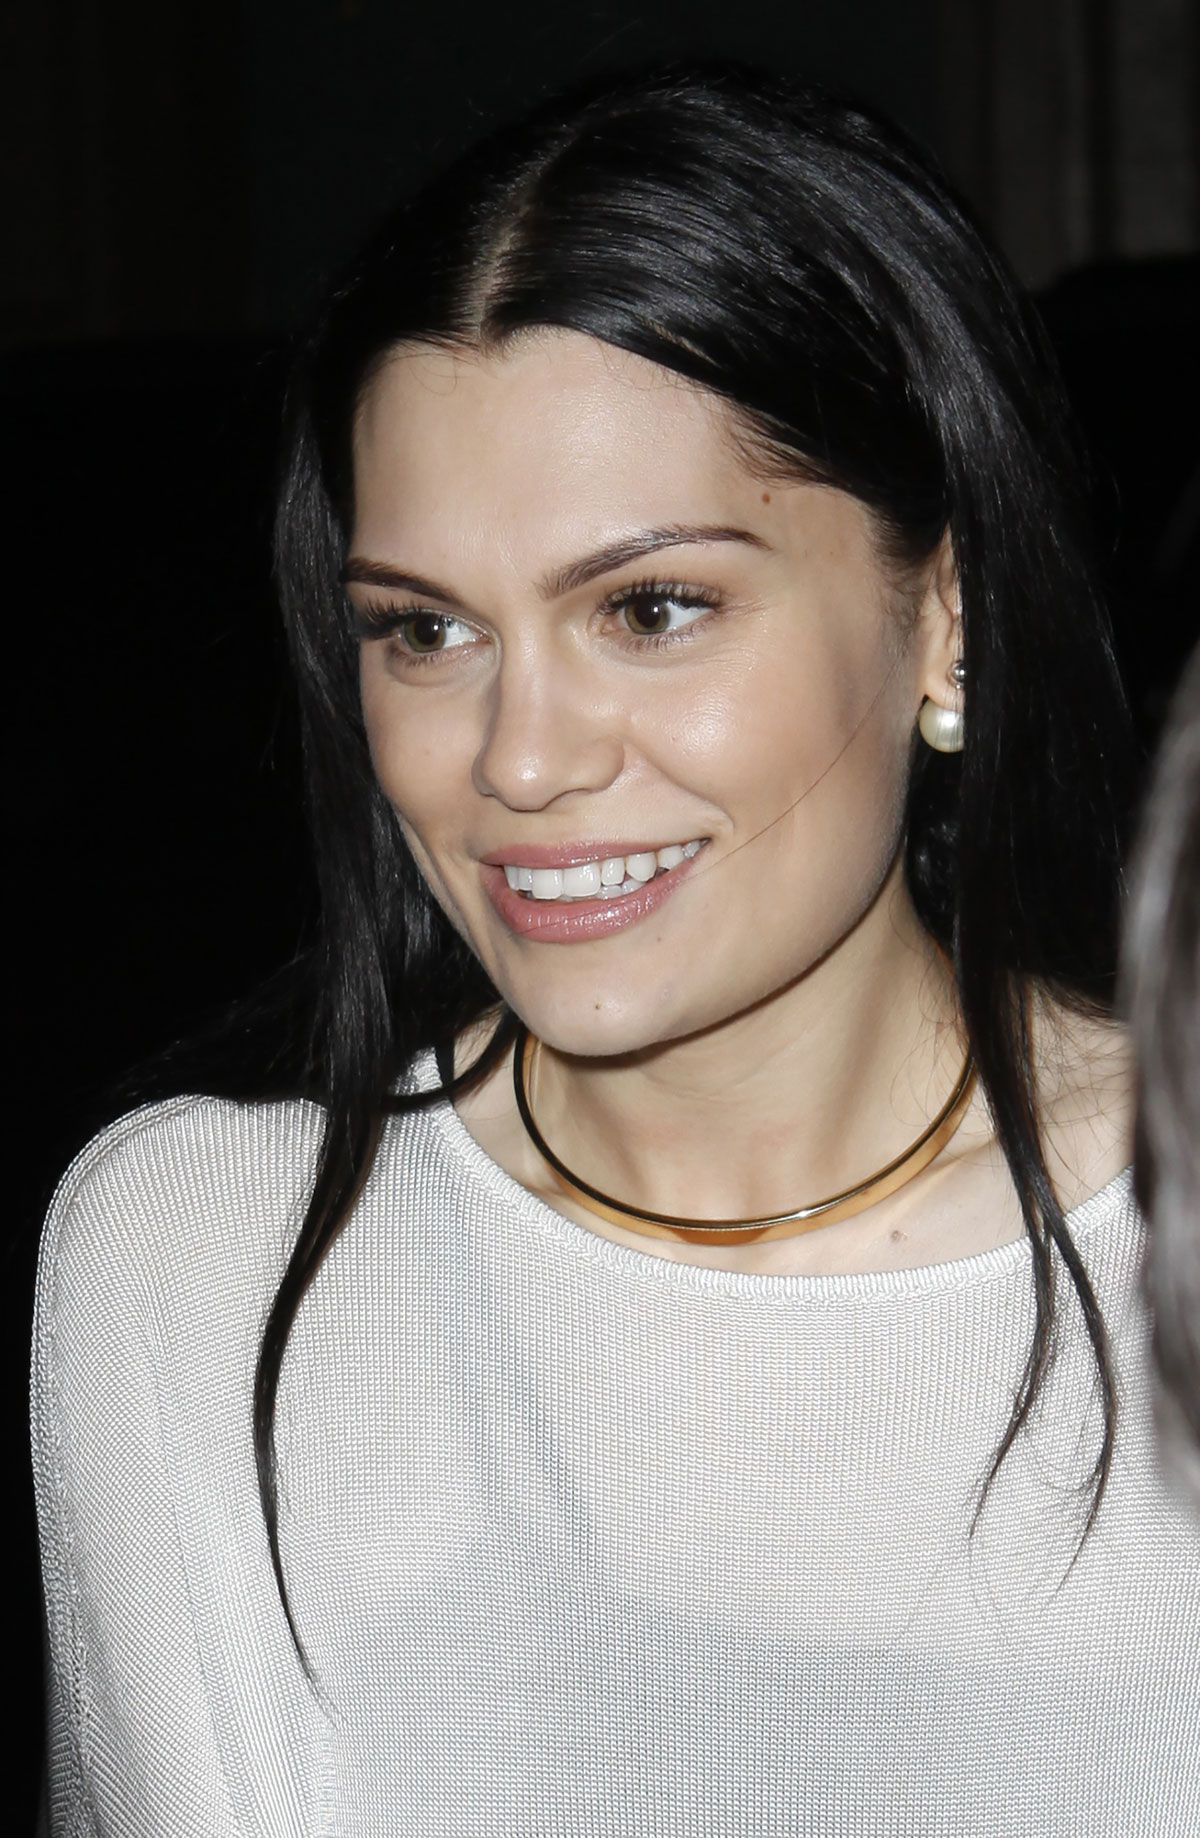 Jessie J out and about in New York City